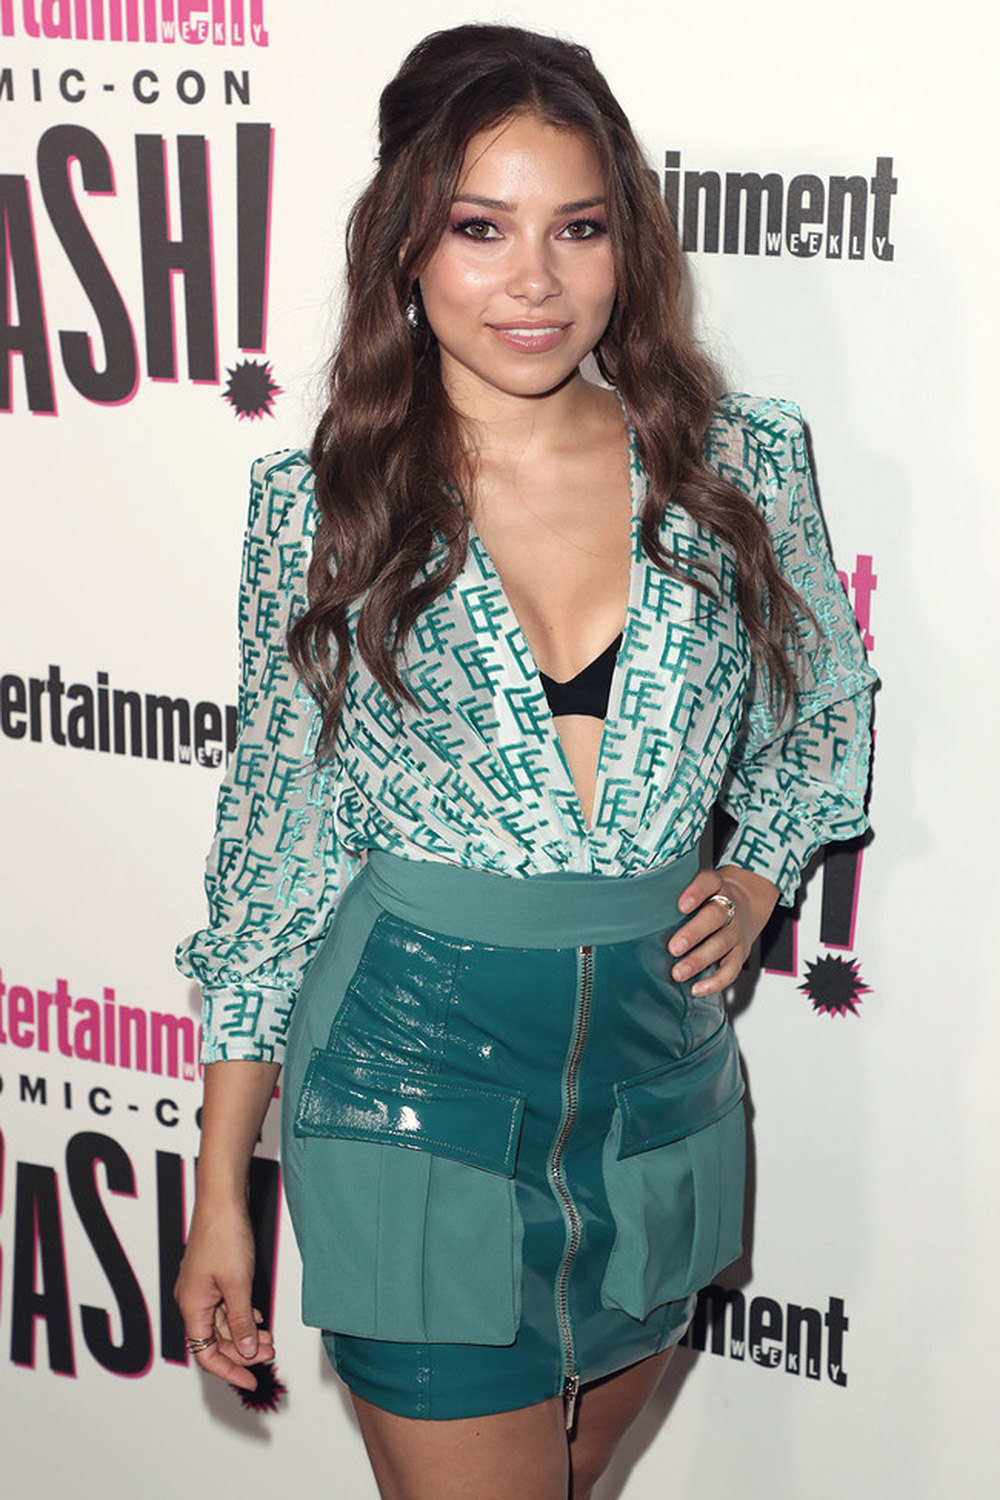 Photos Jessica Parker Kennedy nudes (38 photo), Topless, Cleavage, Instagram, butt 2017